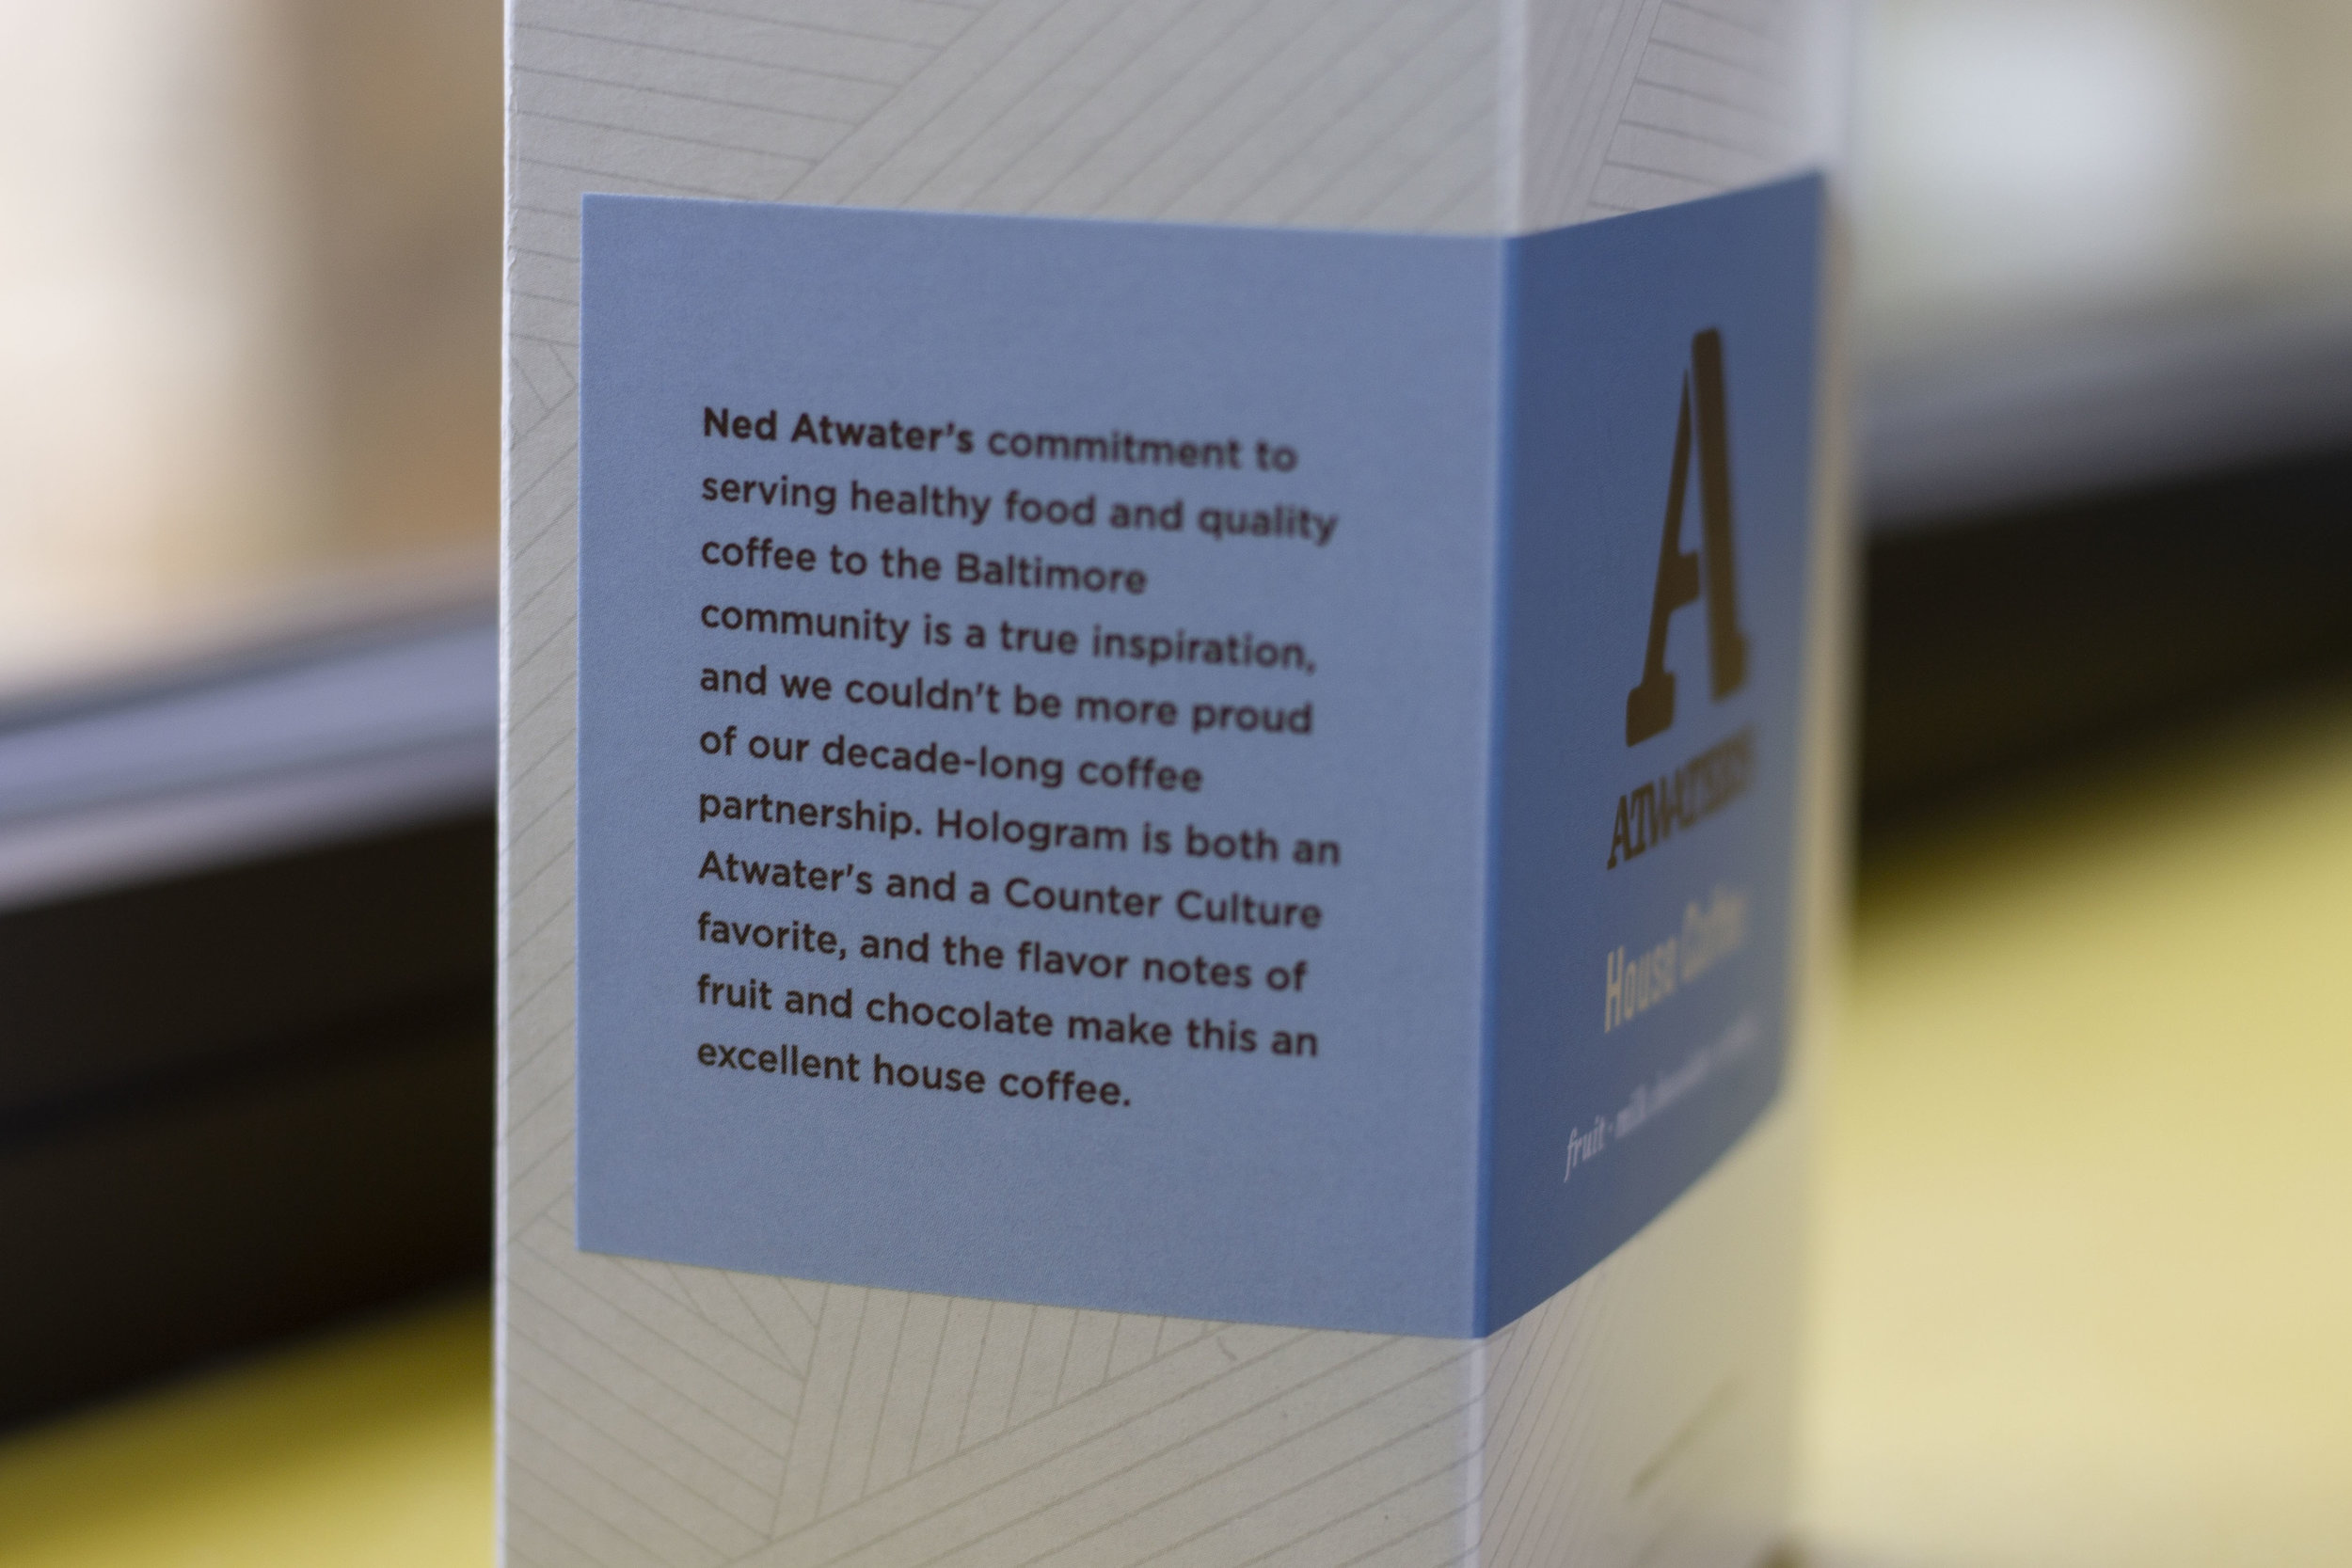 We are committed to and proud of our coffee partnership with Counter Culture.